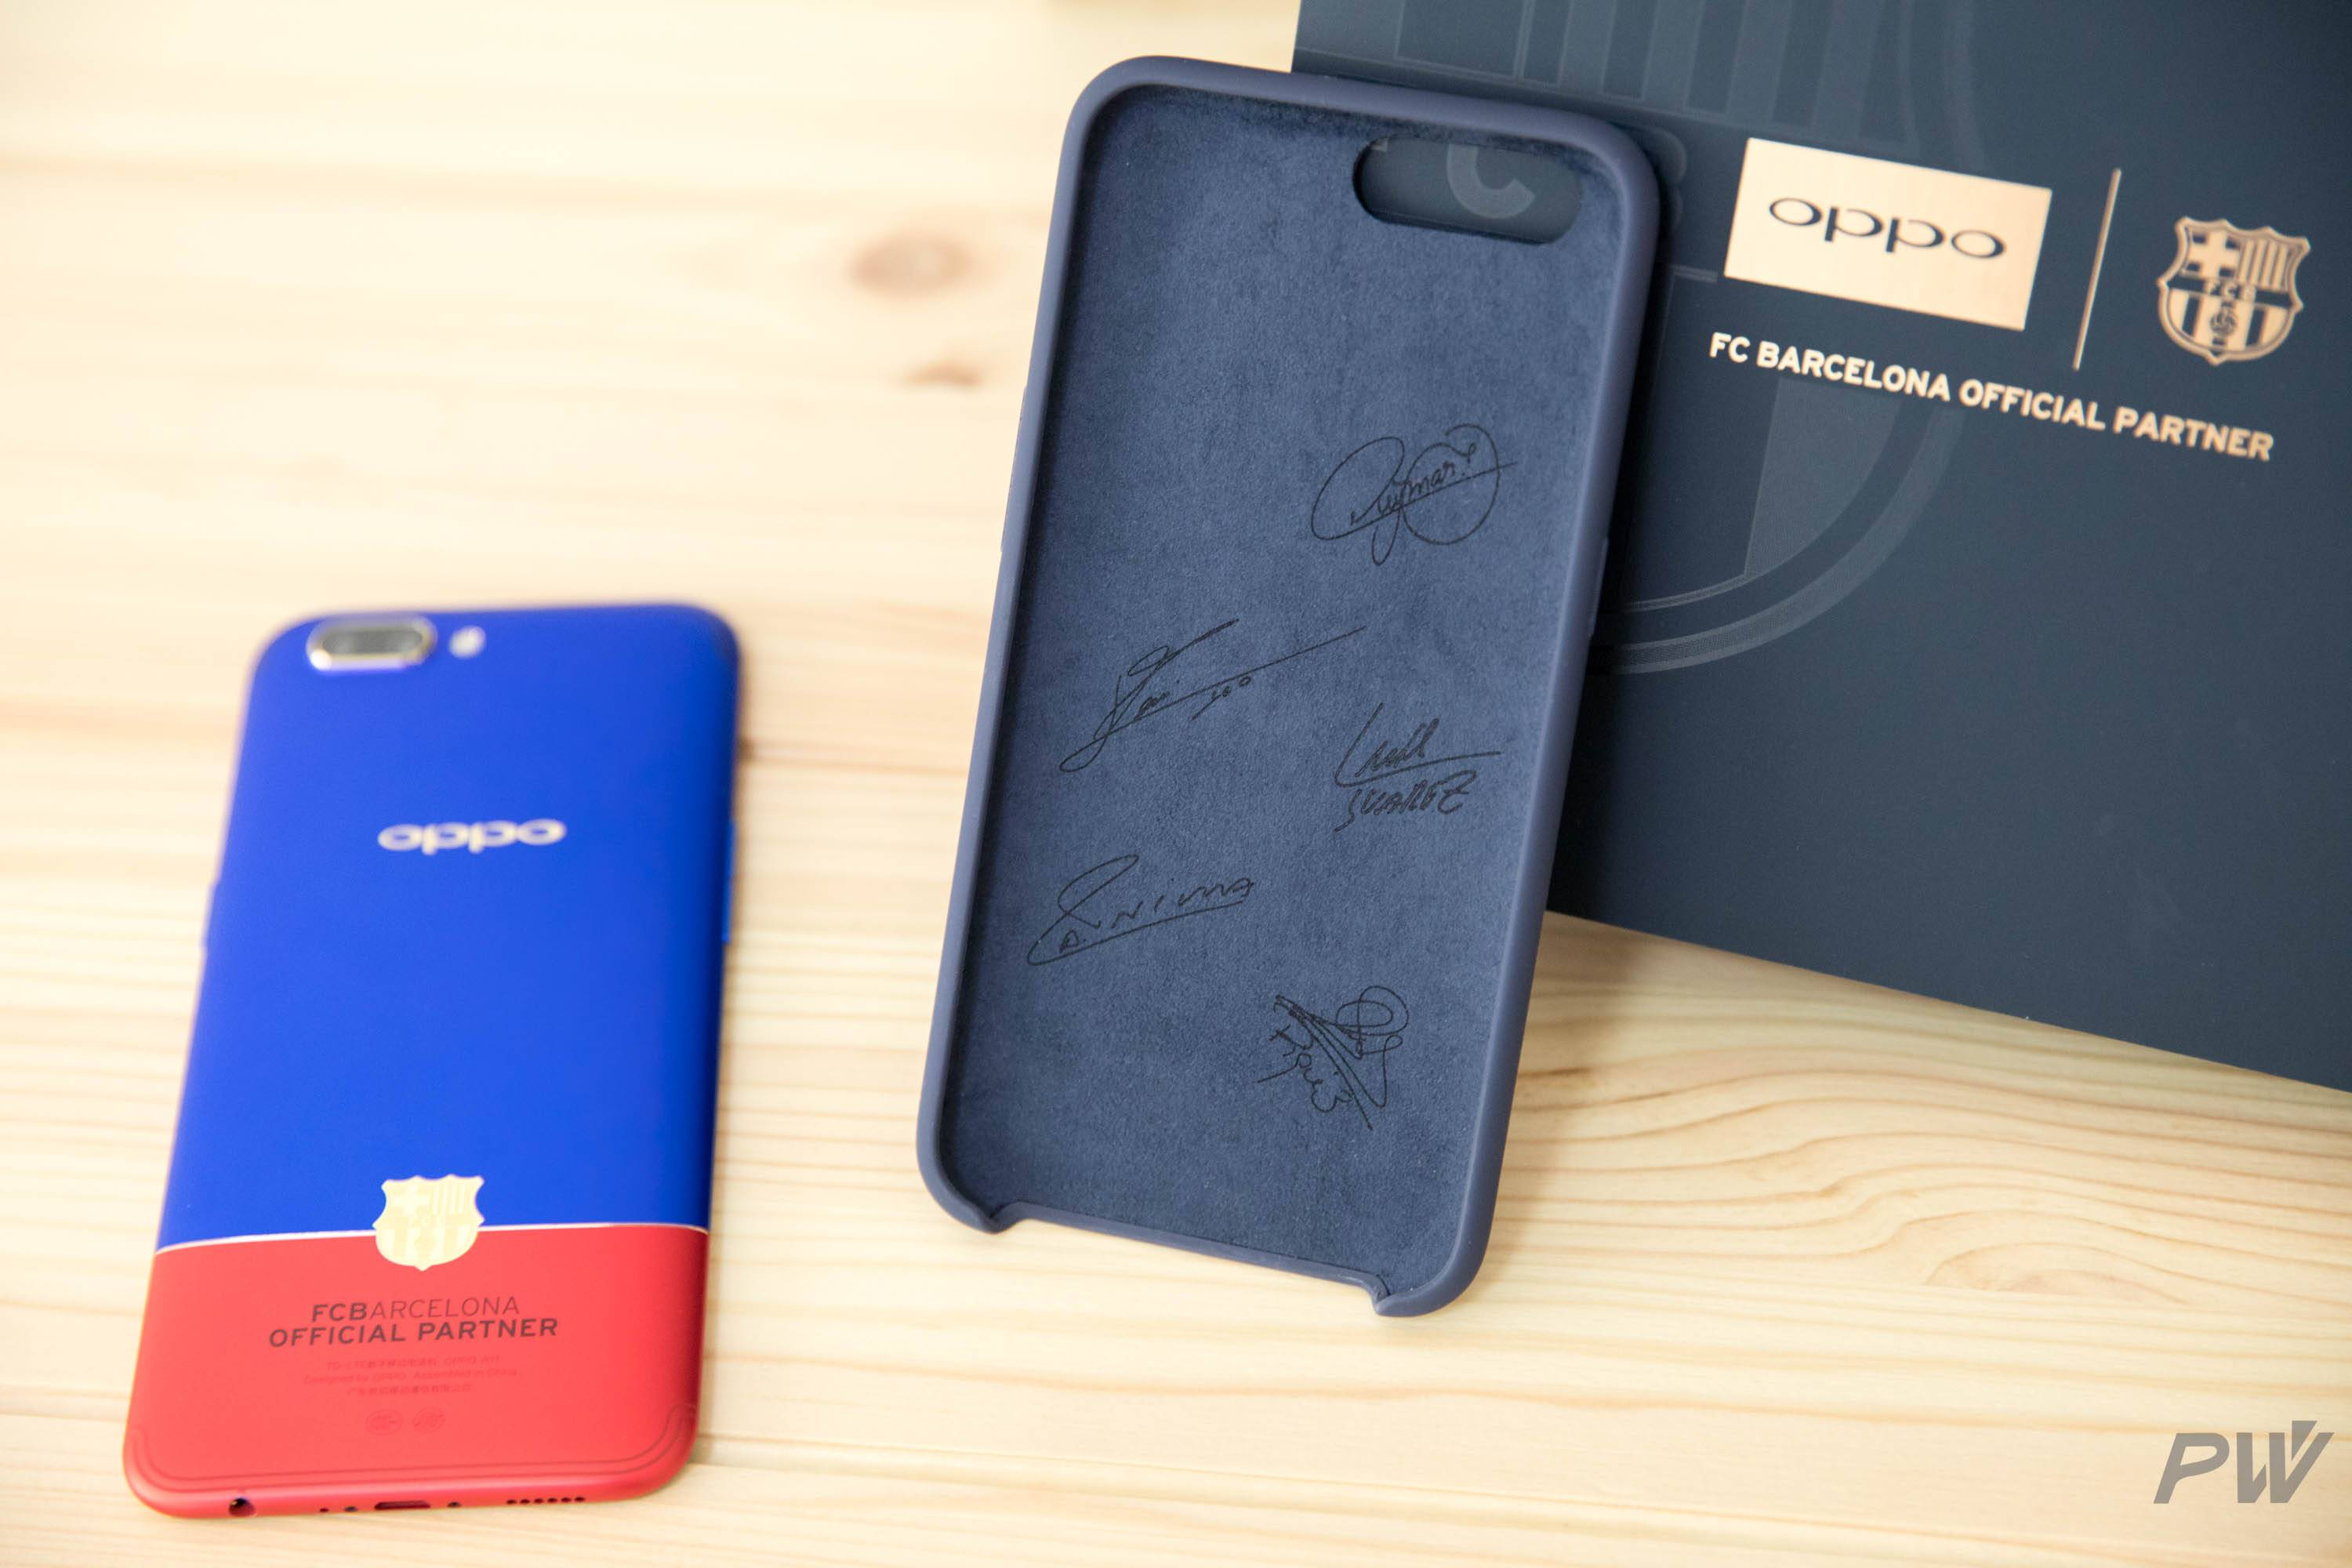 OPPO R11 FCB Barcelona Photo by Hao Ying-18